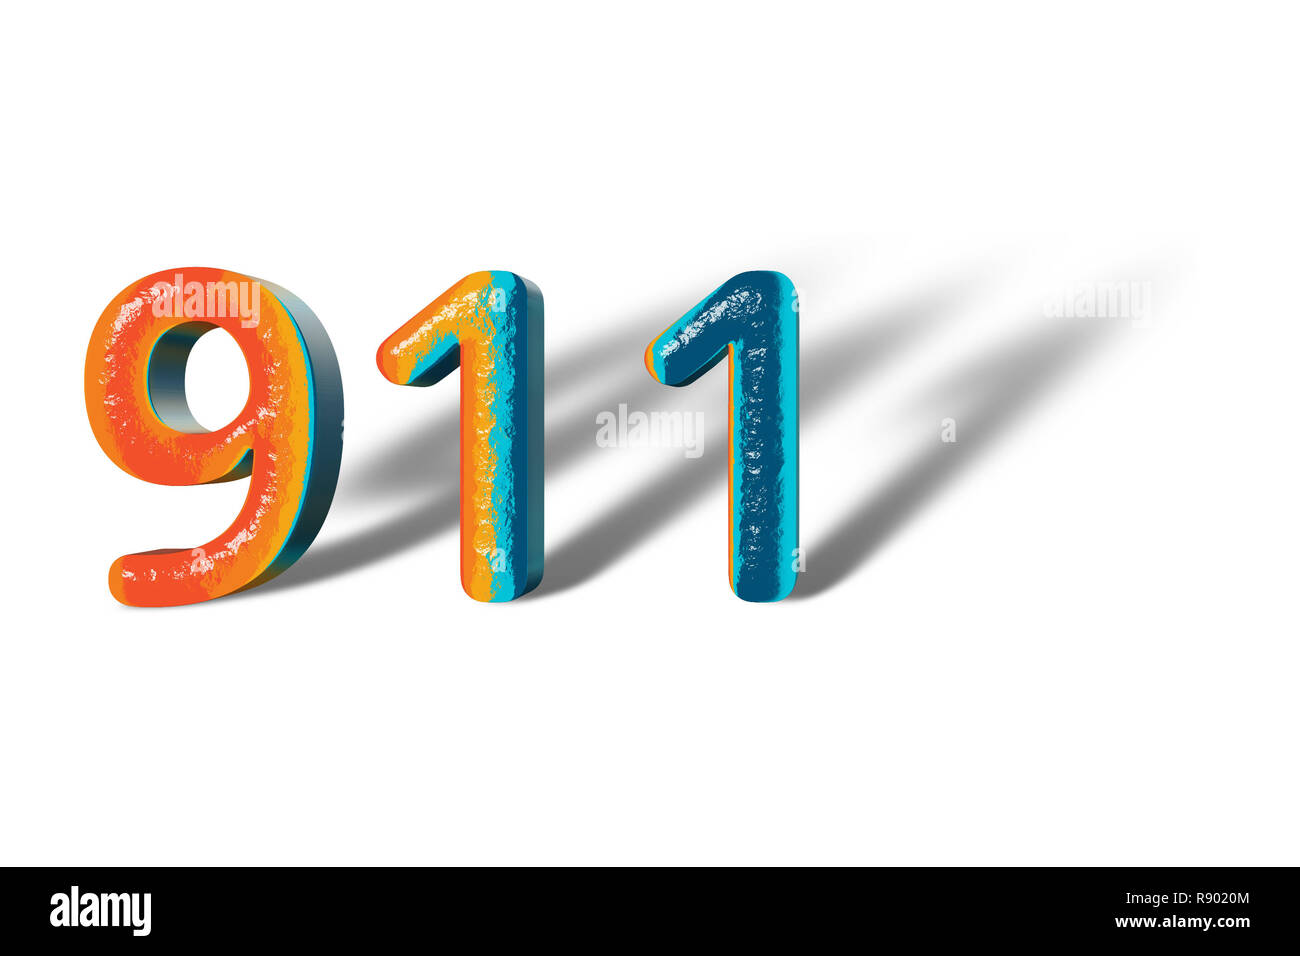 Number 911 Icon Stock Photos Amp Number 911 Icon Stock